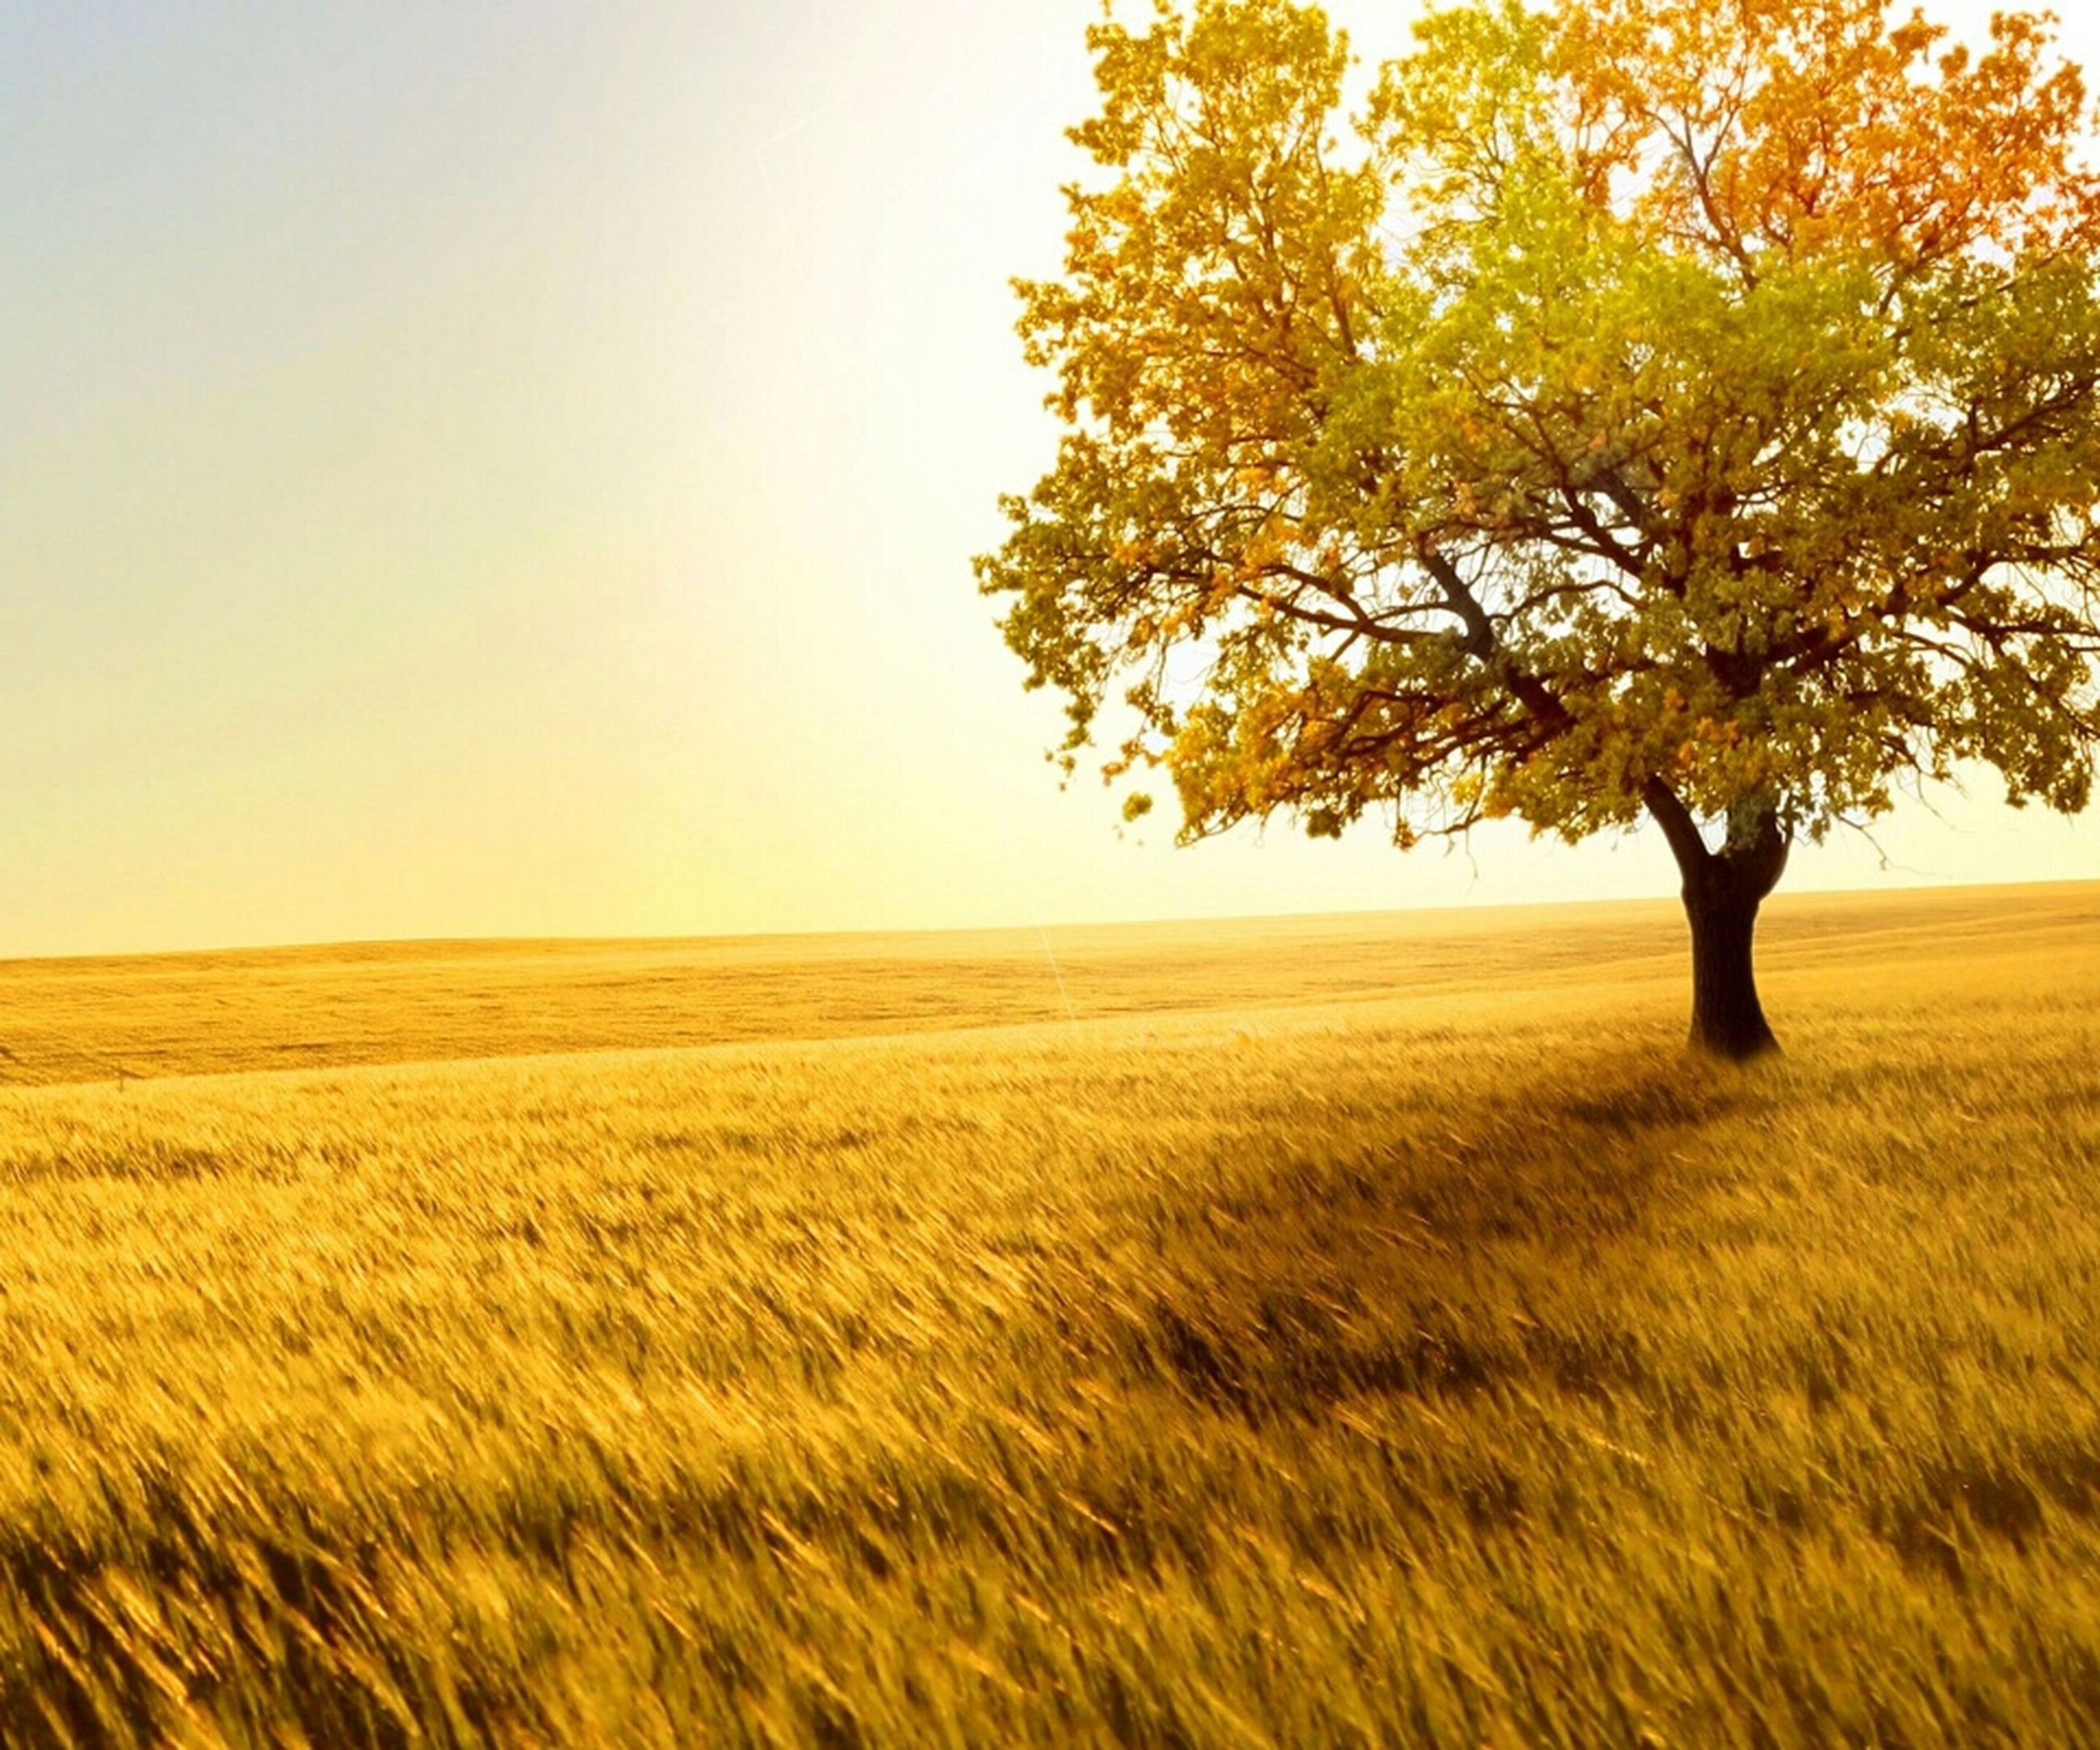 clear sky, field, tranquility, tranquil scene, landscape, beauty in nature, scenics, nature, growth, tree, agriculture, rural scene, copy space, grass, yellow, idyllic, horizon over land, farm, crop, no people